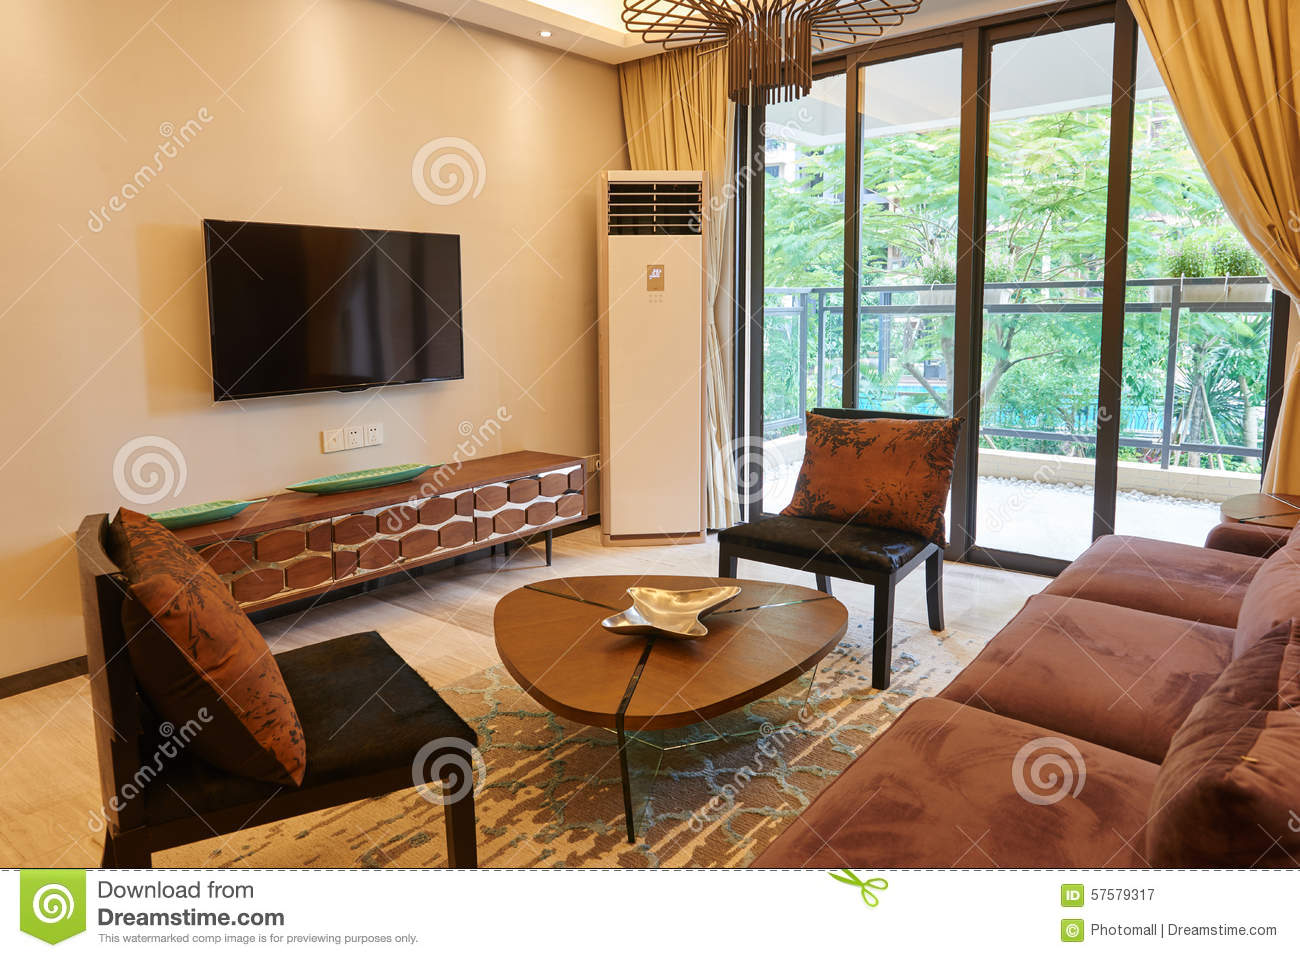 Oriental style living room stock photo image 57579317 - Oriental style living room ...